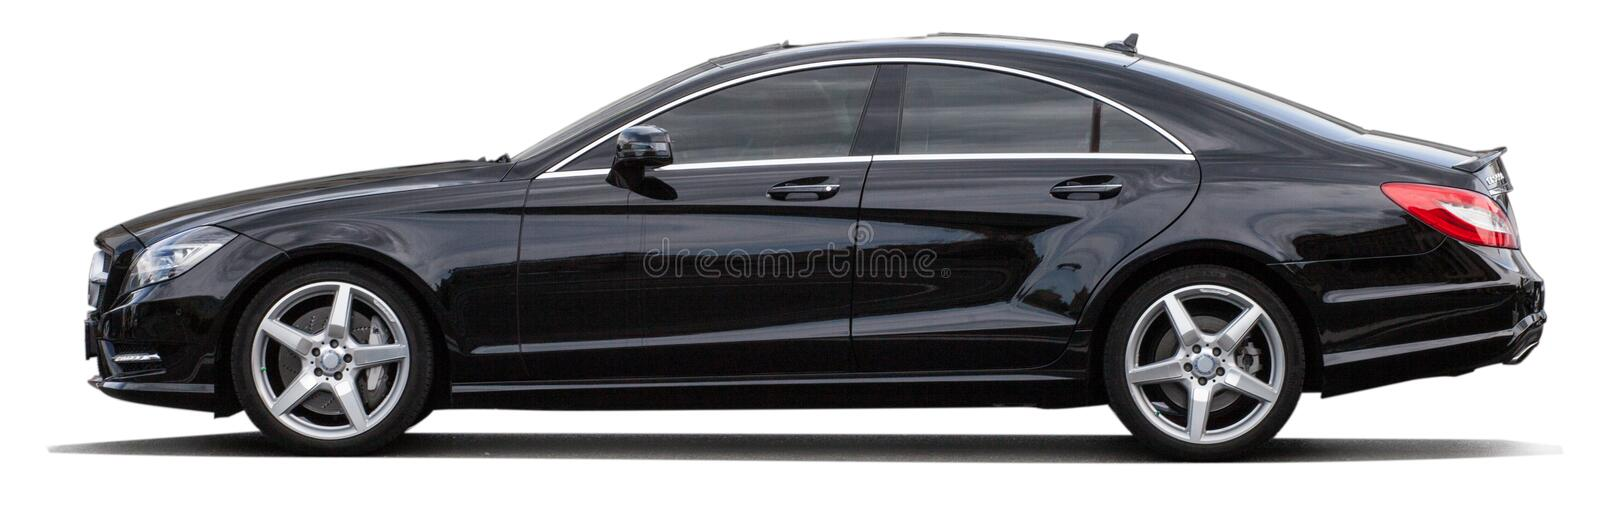 Black Mercedes-Benz on a transparent background royalty free stock photo